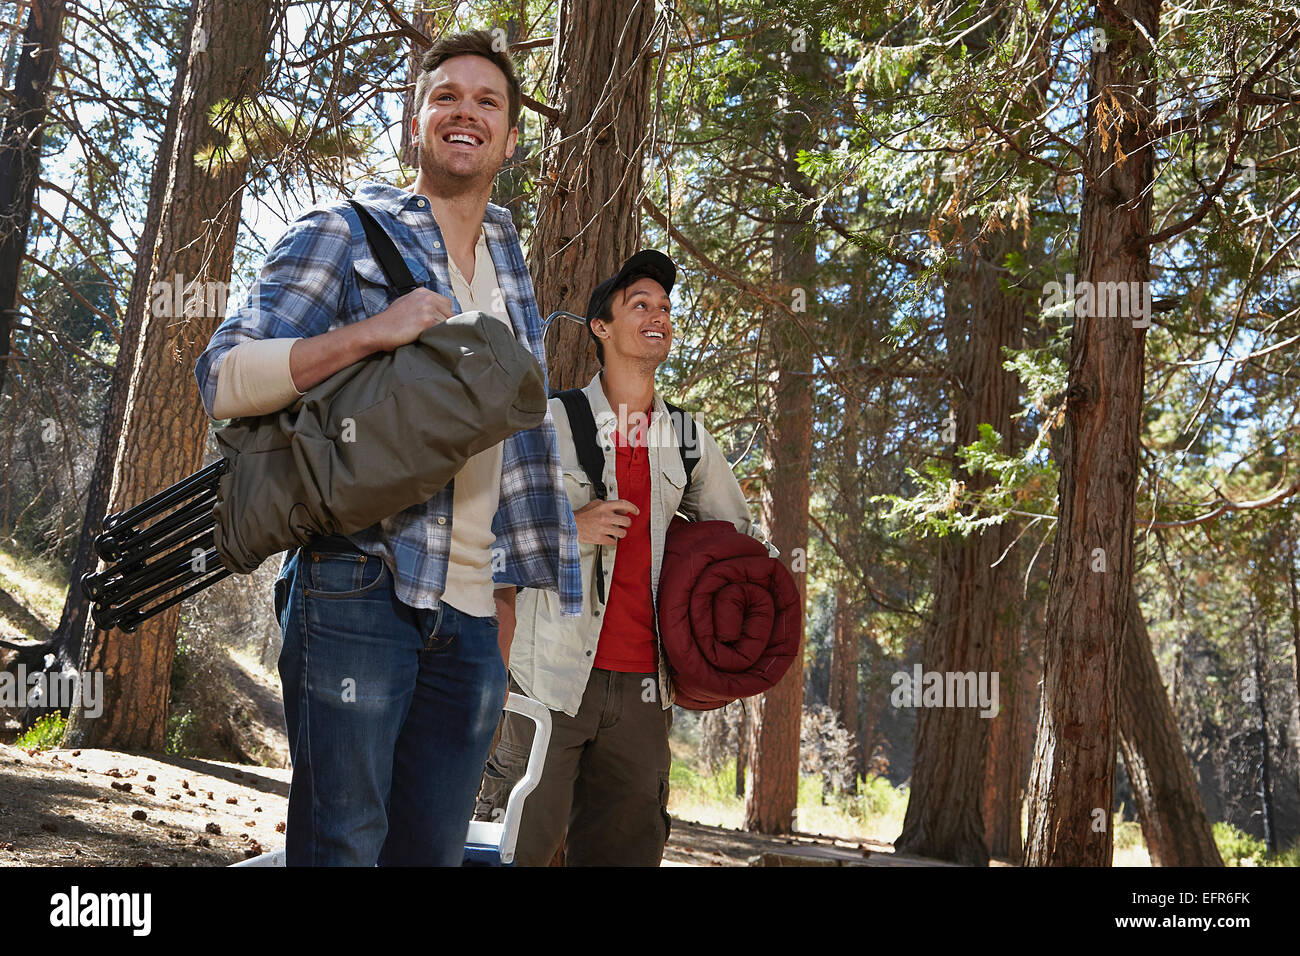 Two young men walking in forest with camping equipment, Los Angeles, California, USA - Stock Image